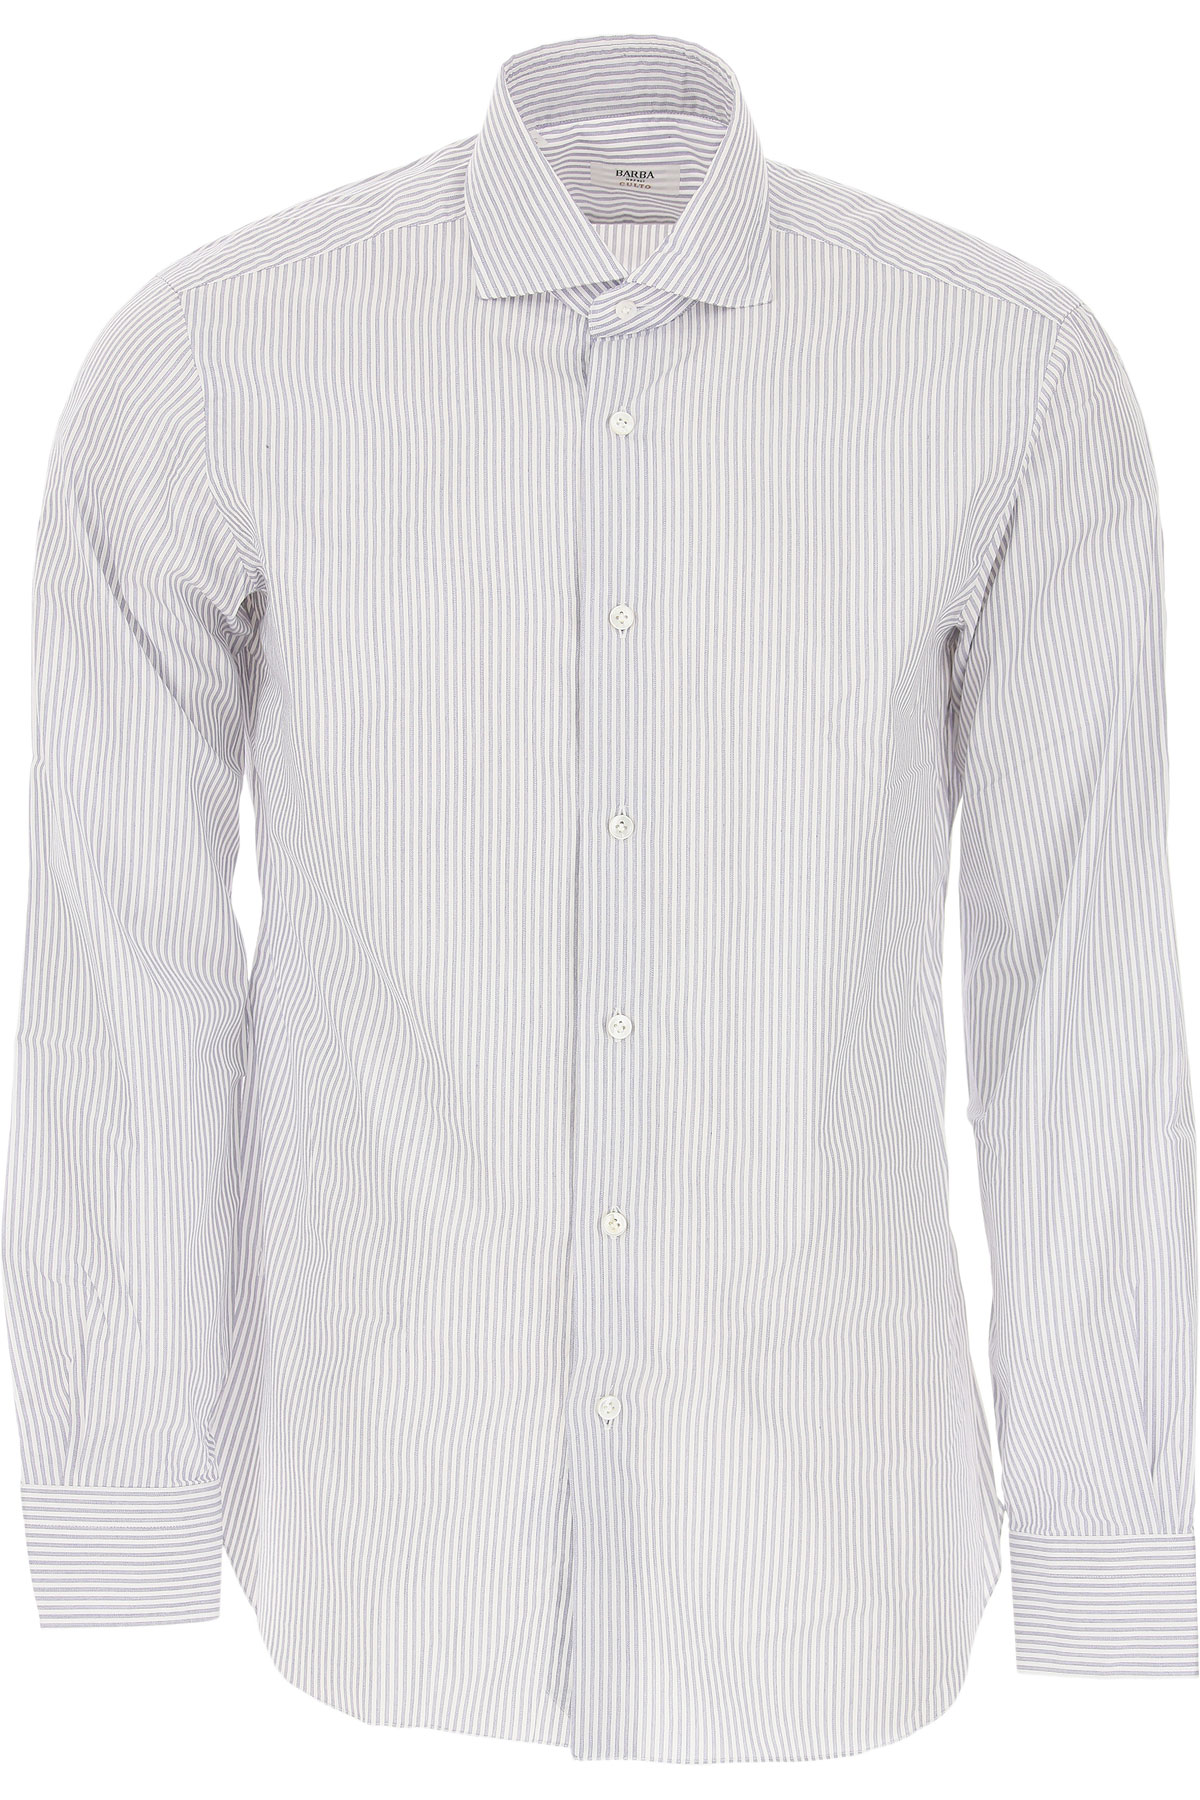 Barba Shirt for Men On Sale in Outlet, White, Cotton, 2019, 16 16.5 17